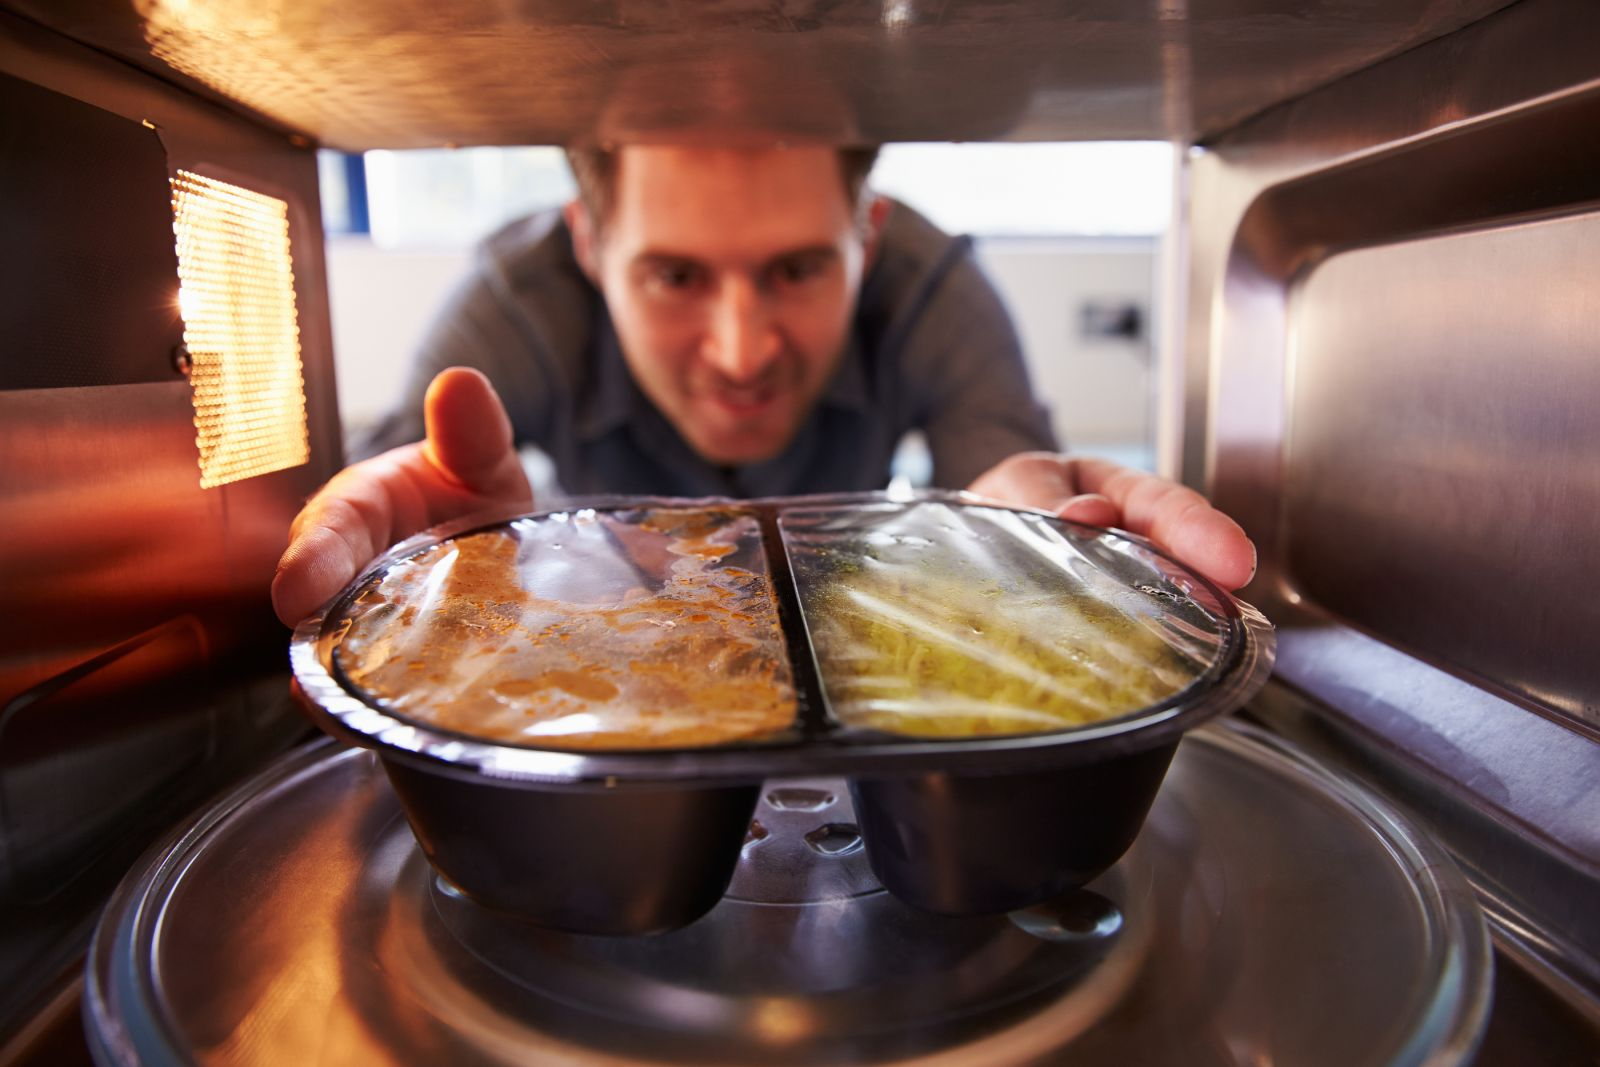 Is It Healthy To Heat Food In Microwave